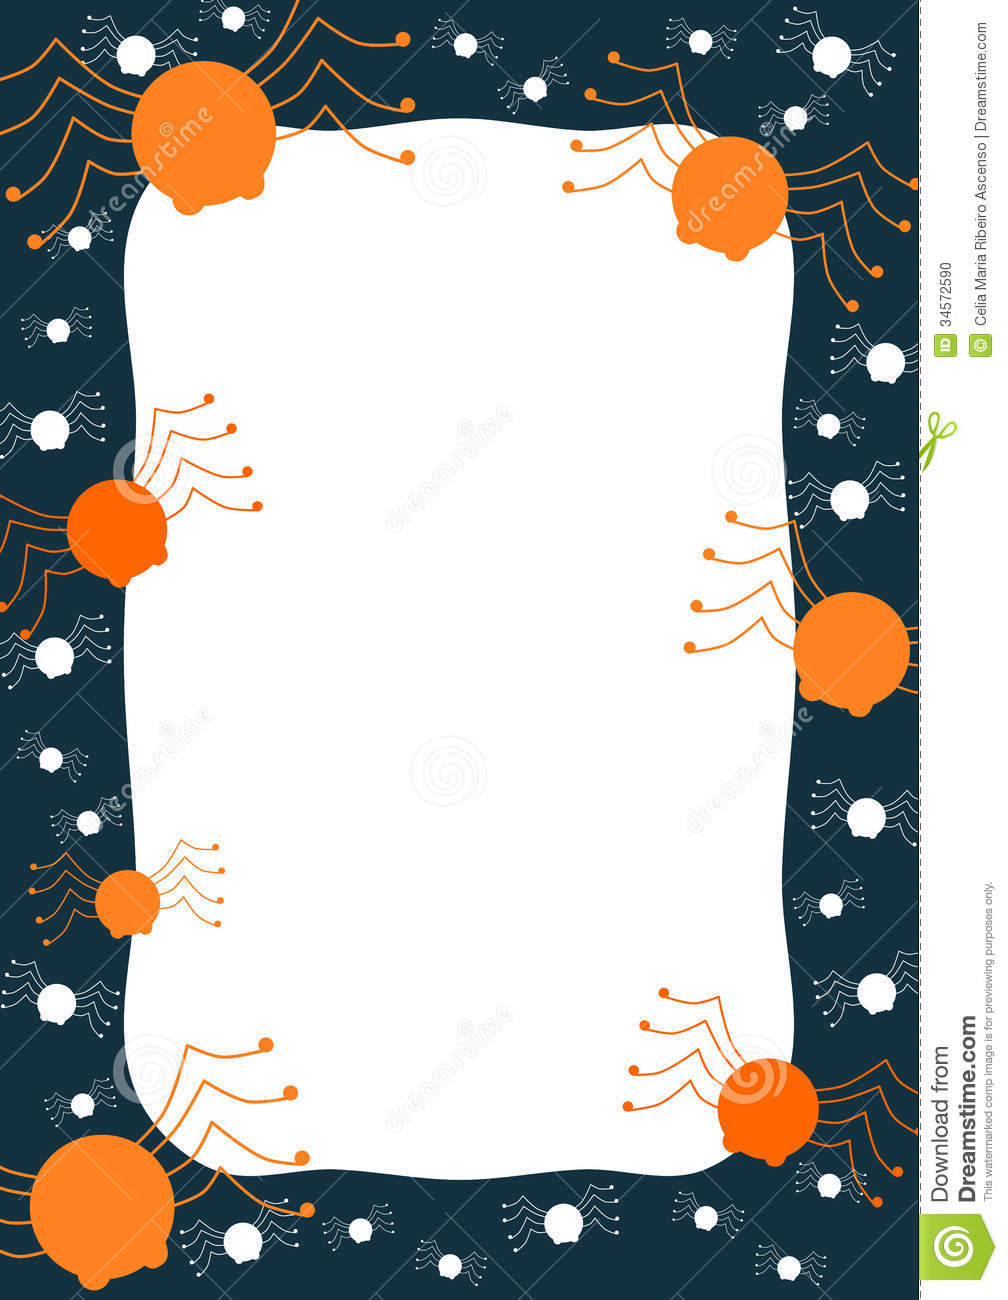 graphic relating to Free Printable Halloween Borders called Spiders And Cobwebs Halloween Border Body Inventory